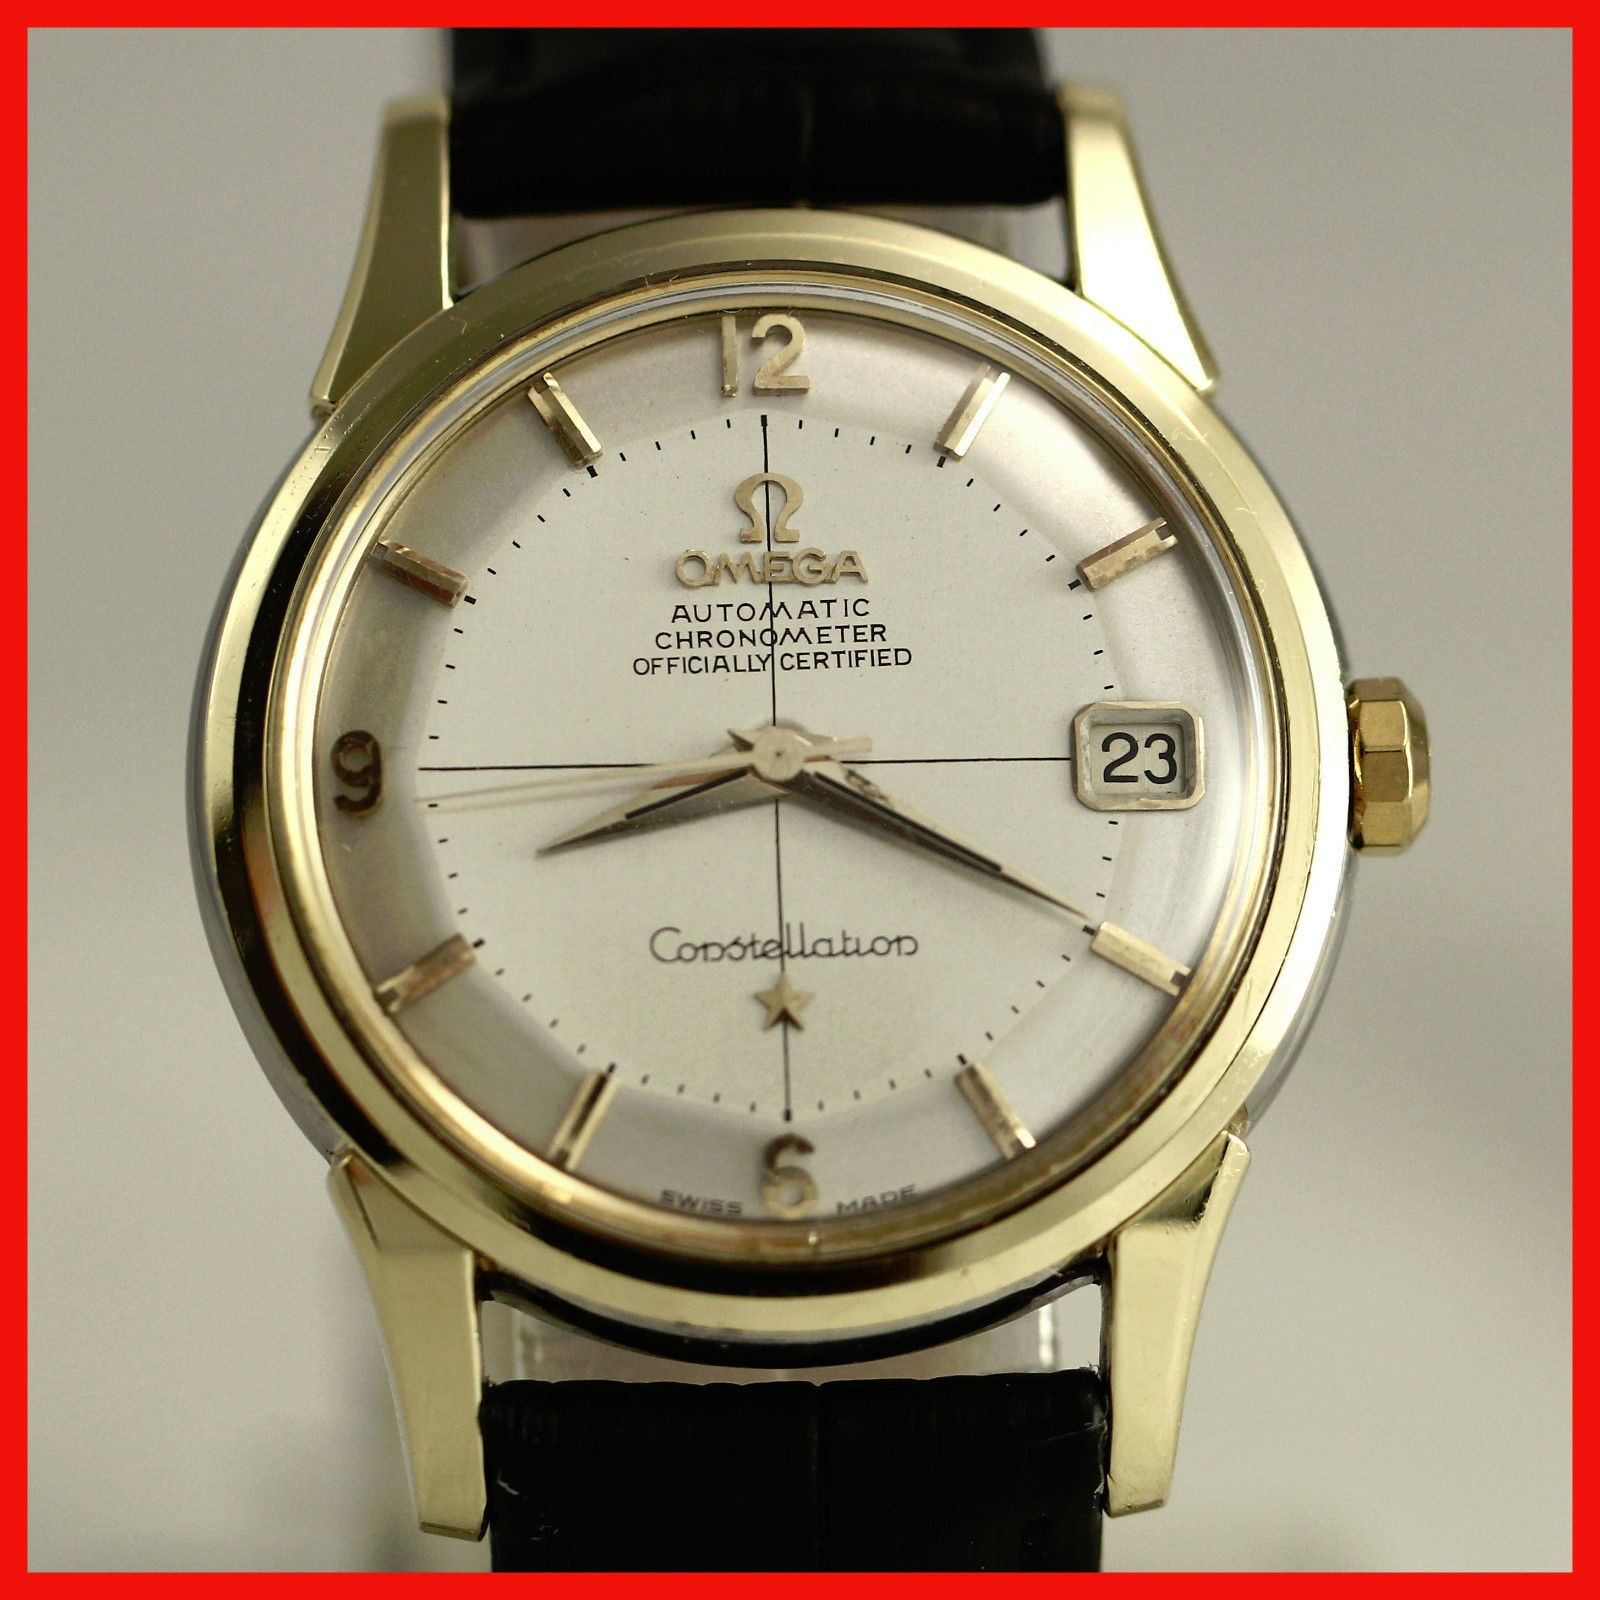 VINTAGE OMEGA CONSTELLATION 14393 PIE PAN 14K GOLD SS BACK AUTO MENS WATCH N/R https://t.co/V8NmwTngvO https://t.co/TSuAq8H0UE